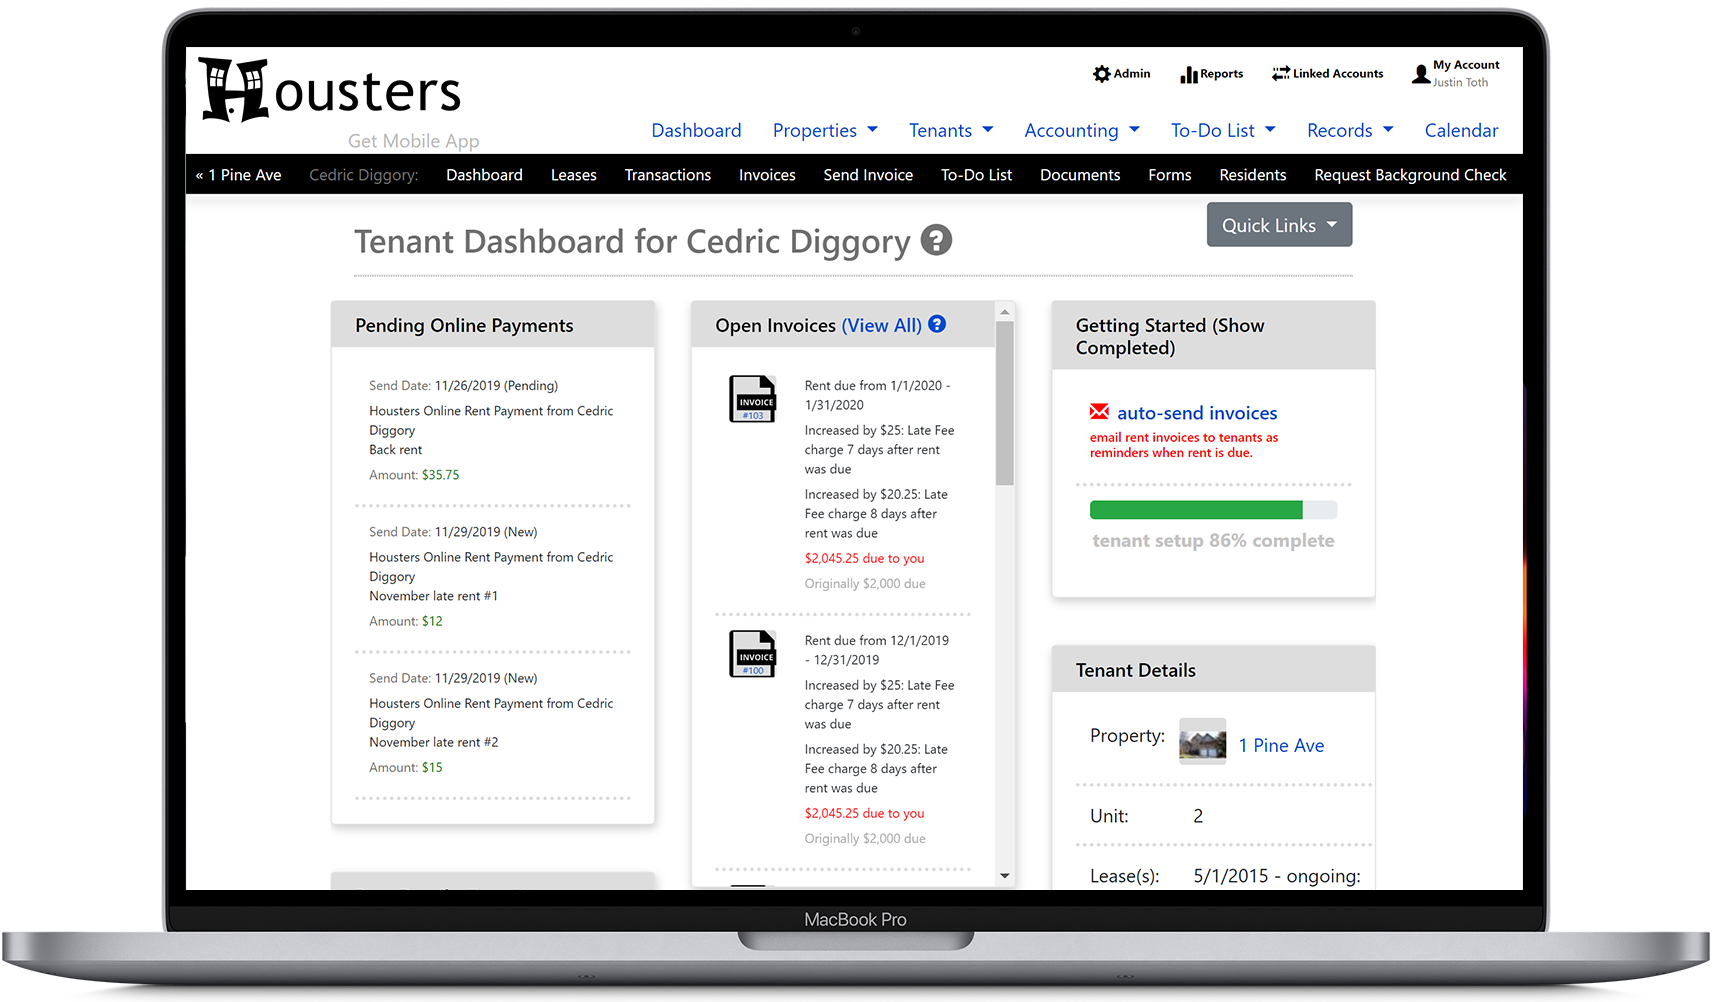 View the tenant dashboard, showing pending online payments, open invoices, and tenant details